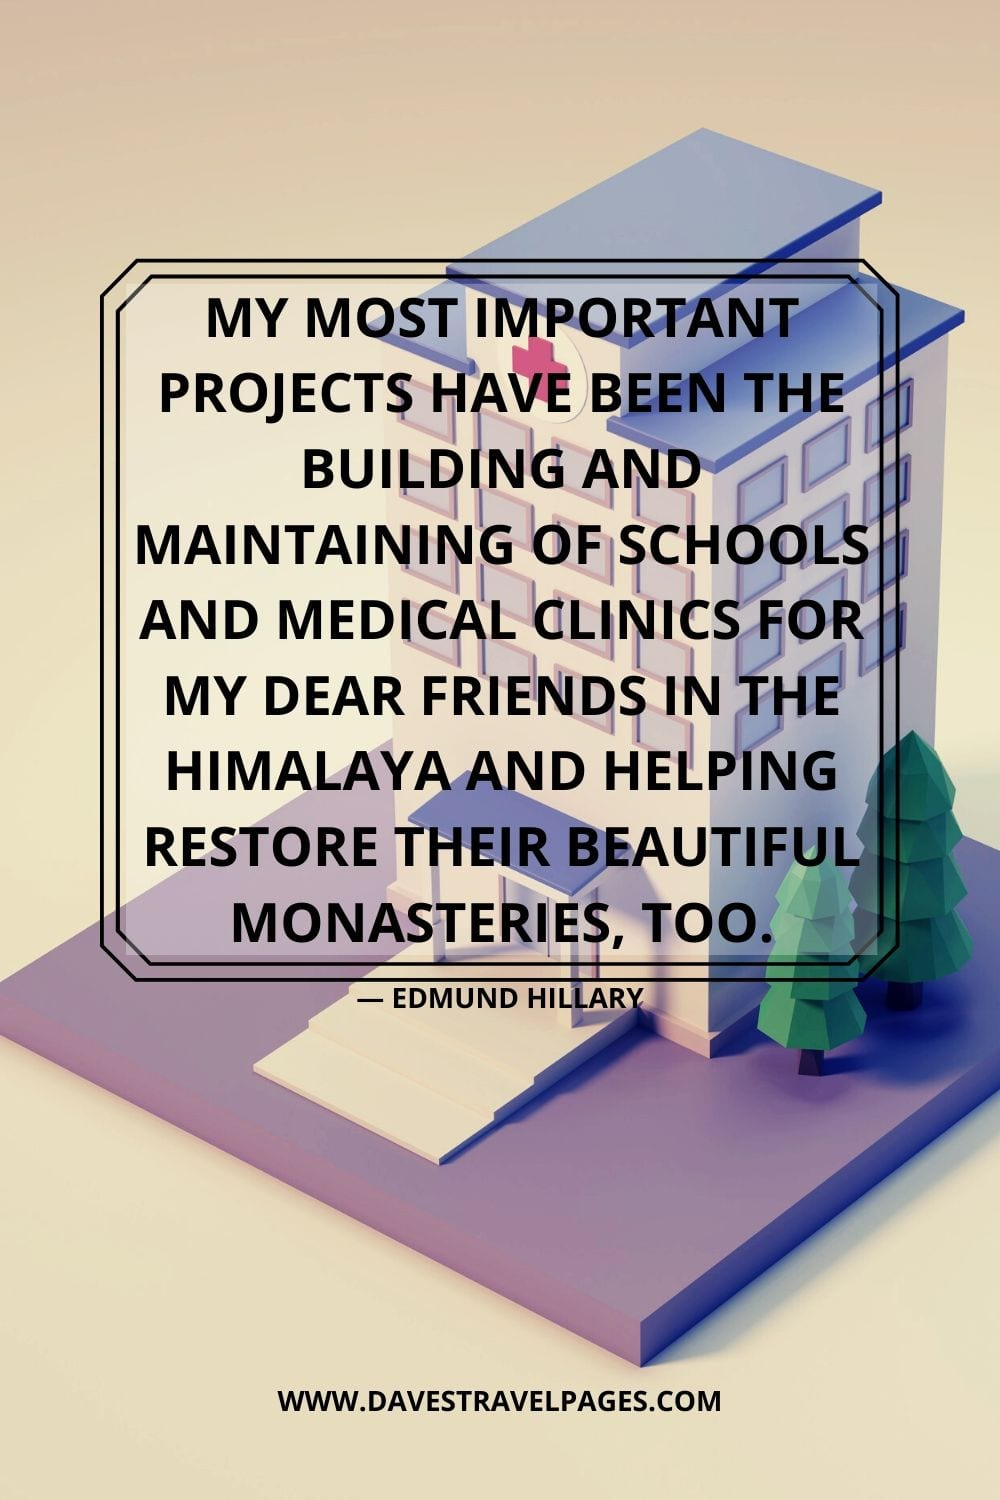 """My most important projects have been the building and maintaining of schools and medical clinics for my dear friends in the Himalaya and helping restore their beautiful monasteries, too."" - Edmund Hillary"